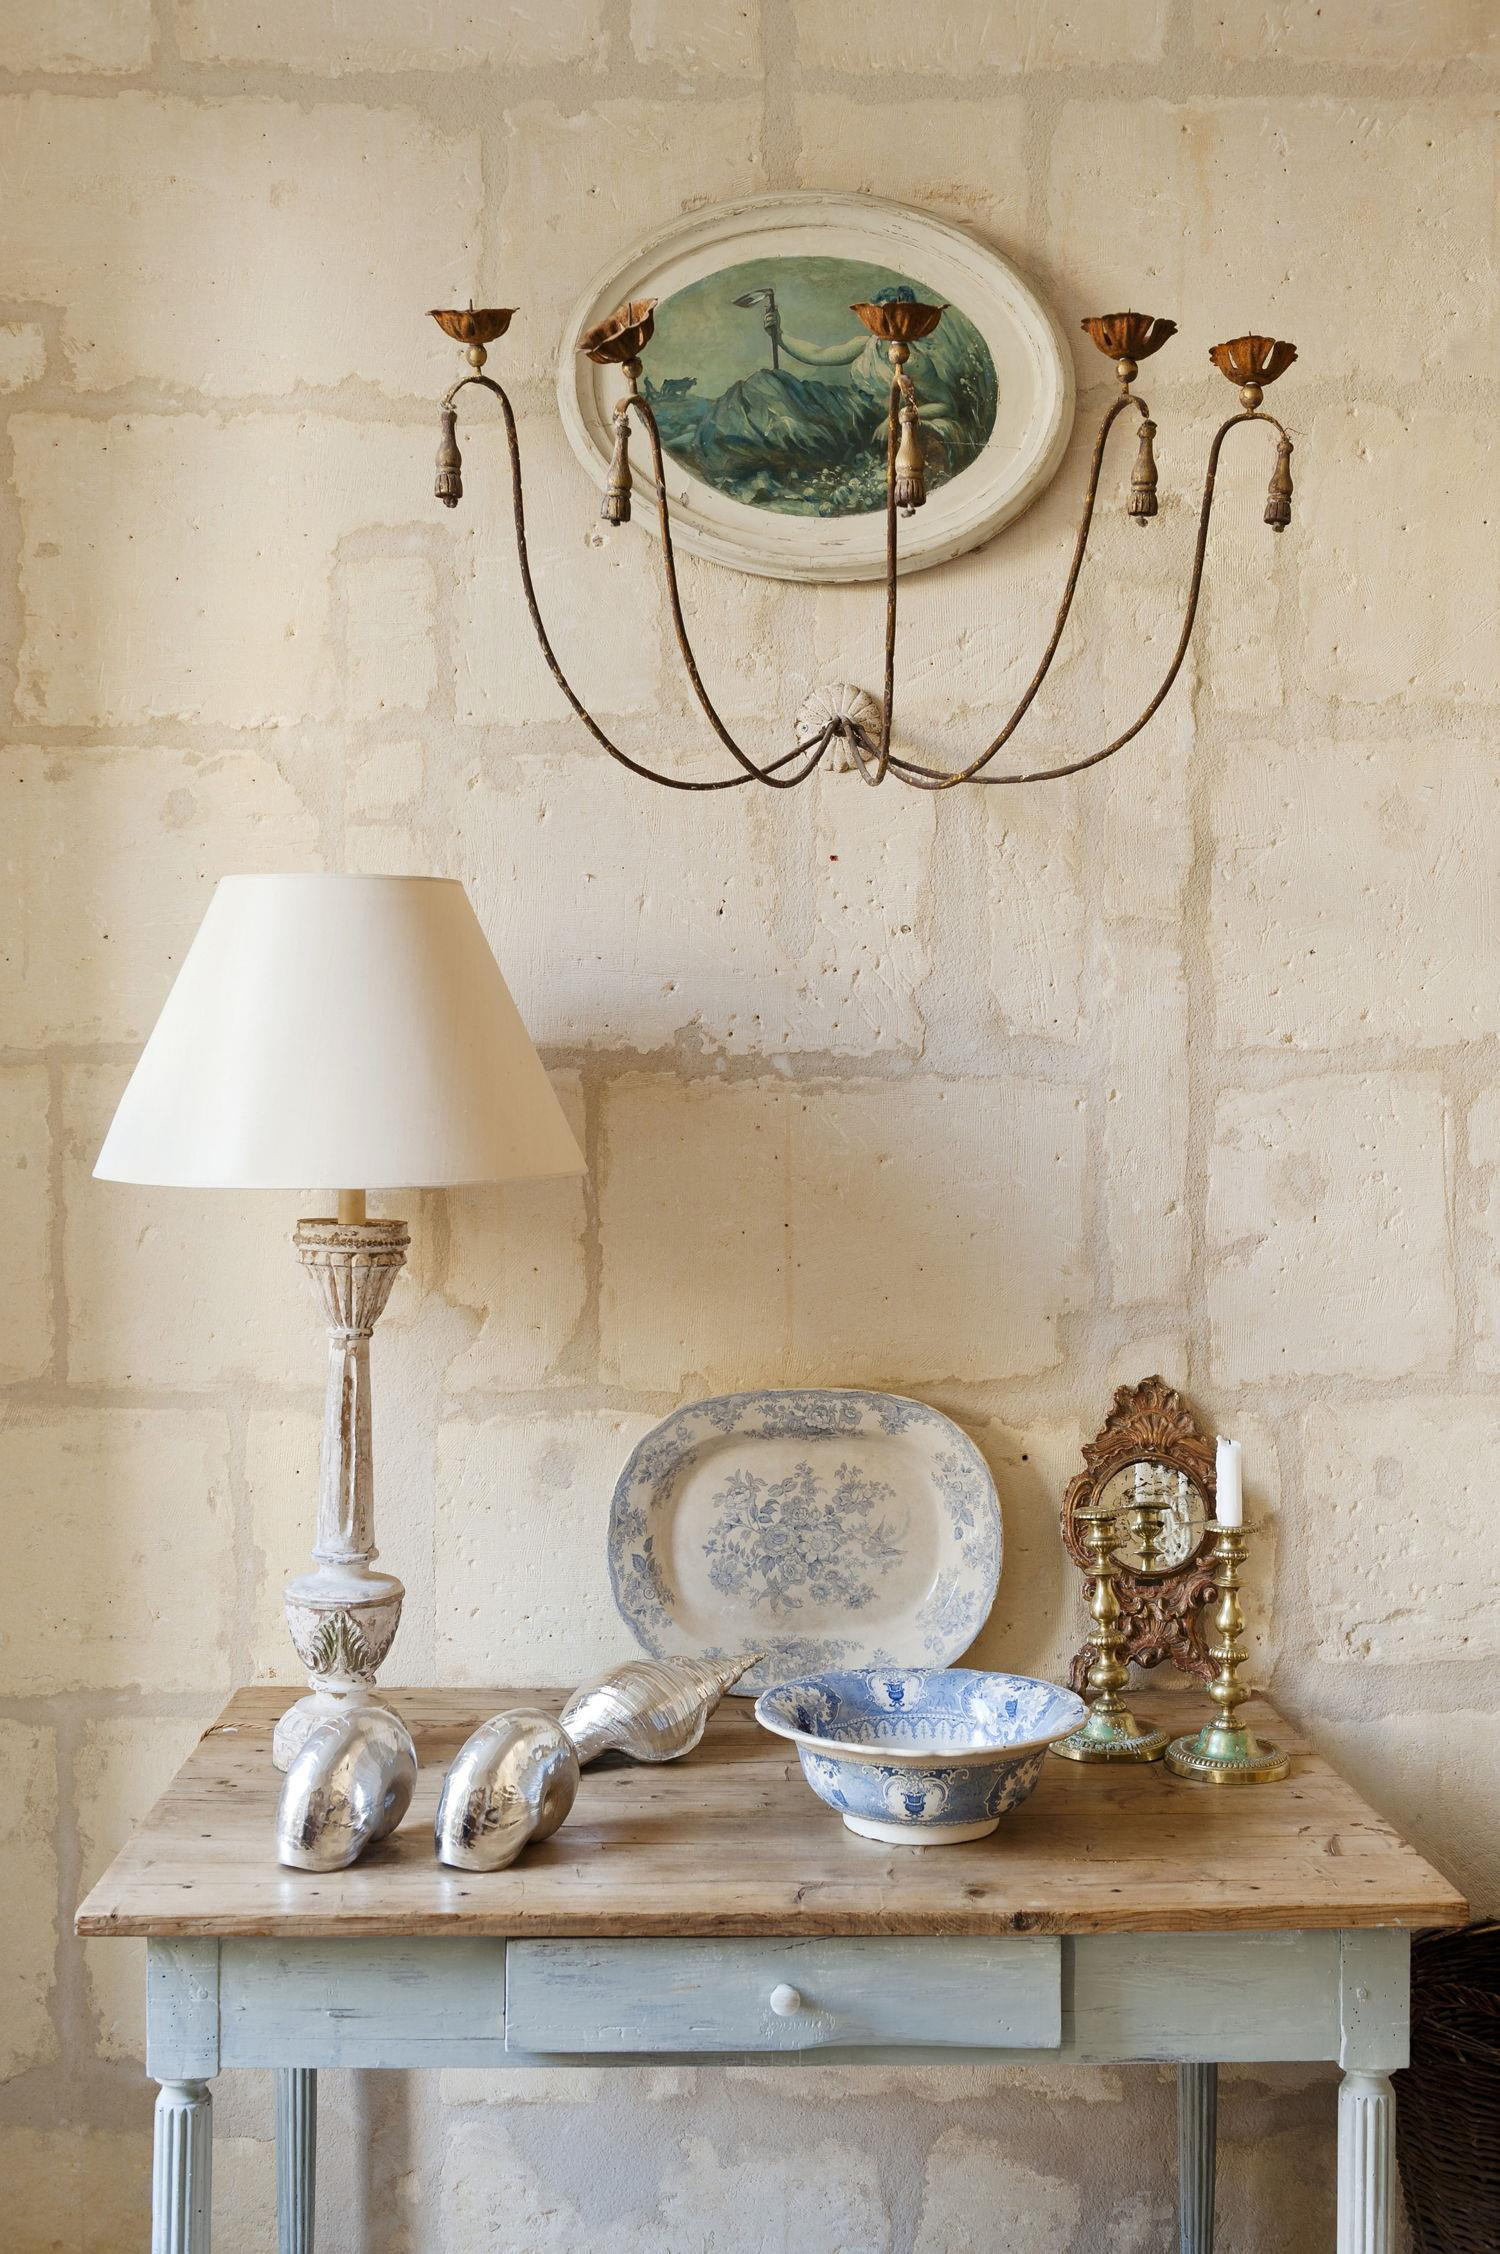 Idee Shabby Chic Per La Casa.Shabby O Country Idee Per Rinnovare L Ingresso Westwing Magazine